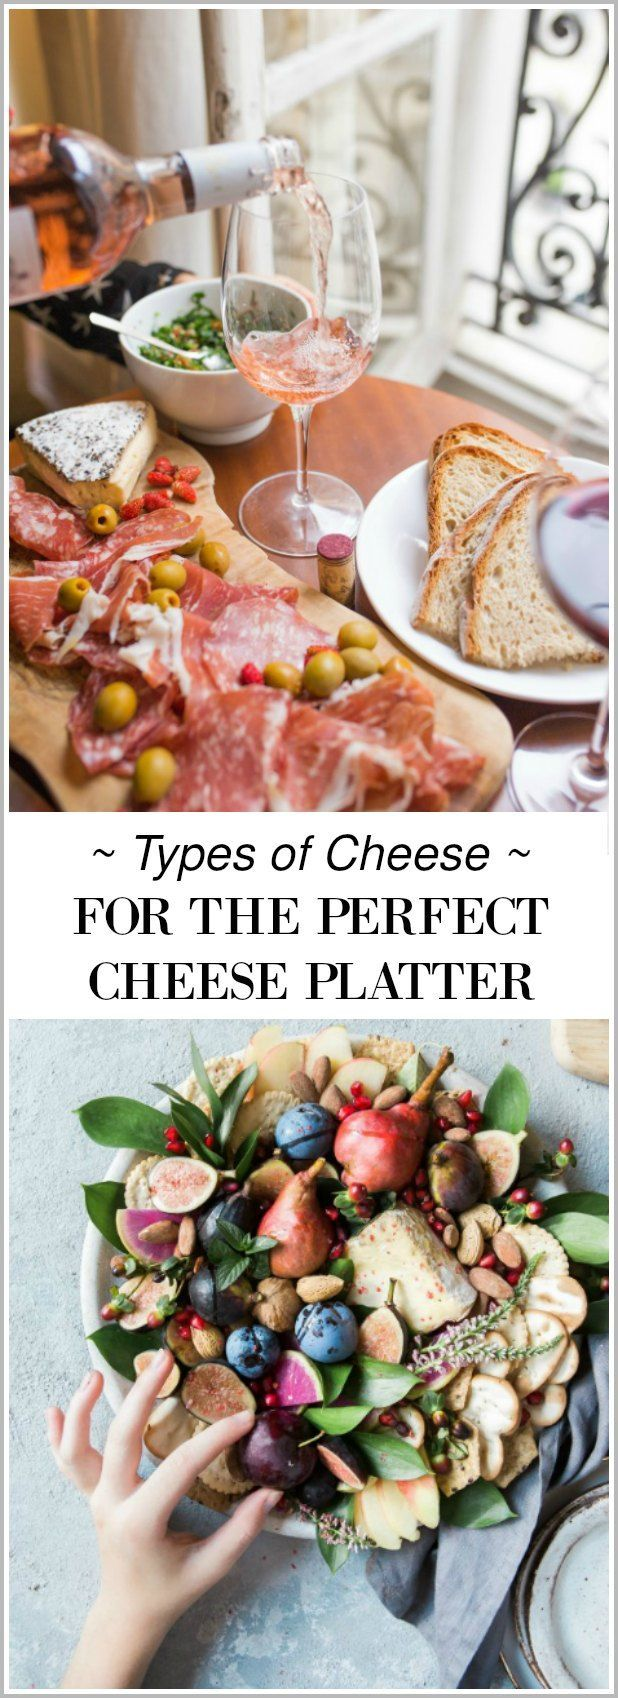 See these no fail tips on picking the types of cheese for the perfect cheese platter and entertain like a pro! This is the ultimate cheese plate guide that includes a FREE printable grocery list of cheeses and other ingredients you'll need for a delicious and beautiful cheese board presentation! #cheese #cheeseplate #entertaining #party  #food #free #printable #grocerylist #organization